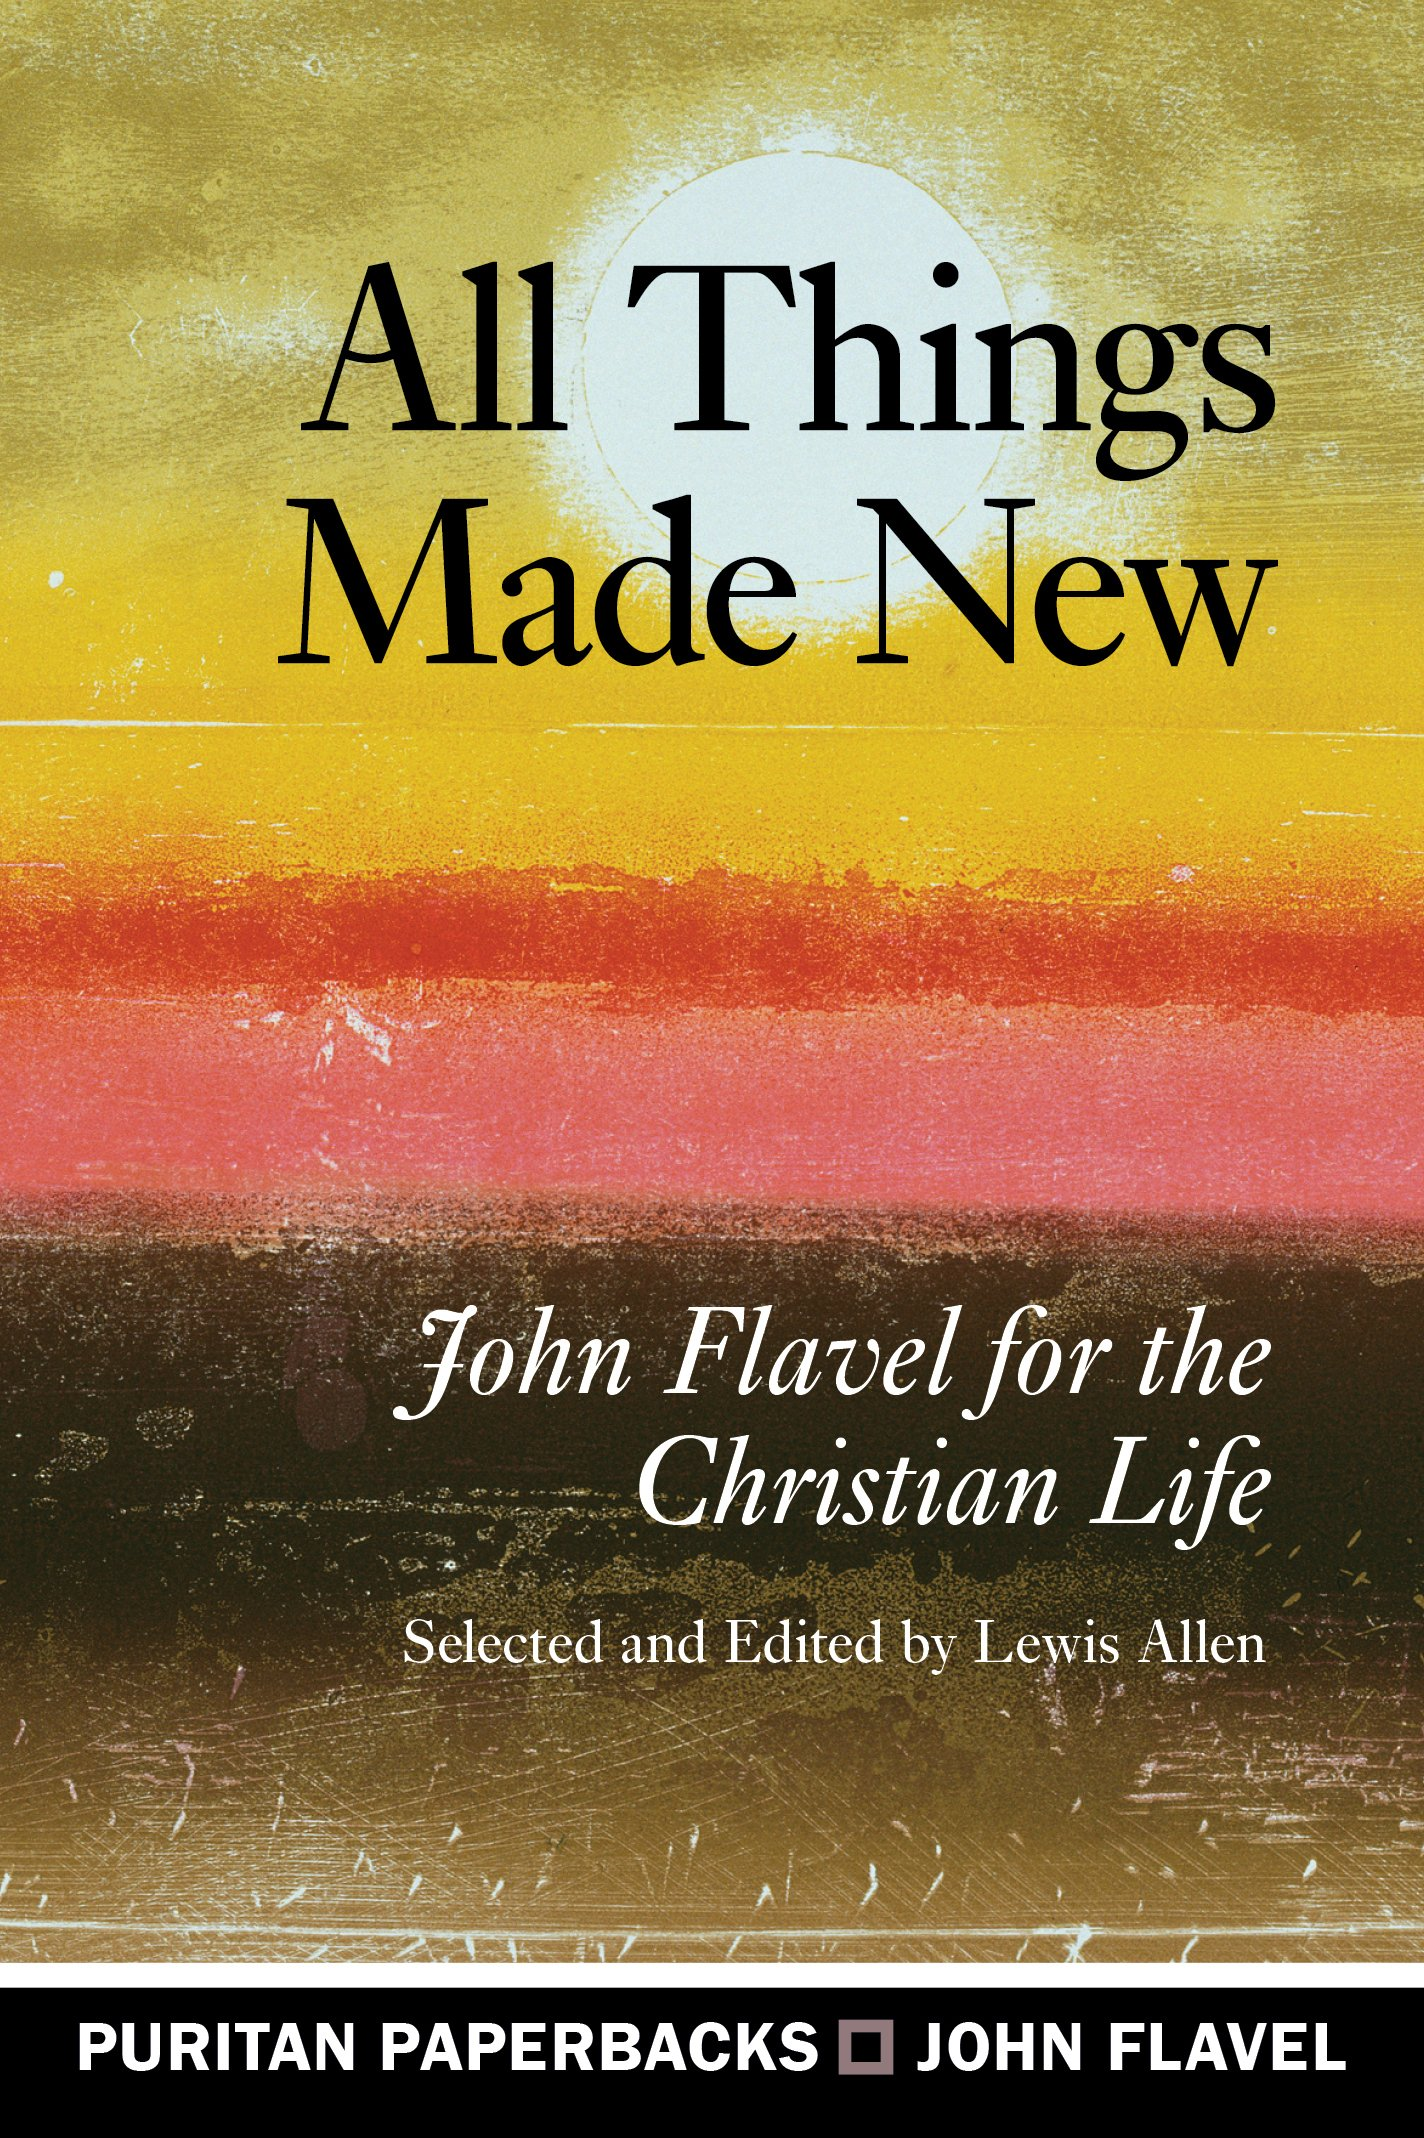 Download All Things Made New (Puritan Paperbacks) ebook